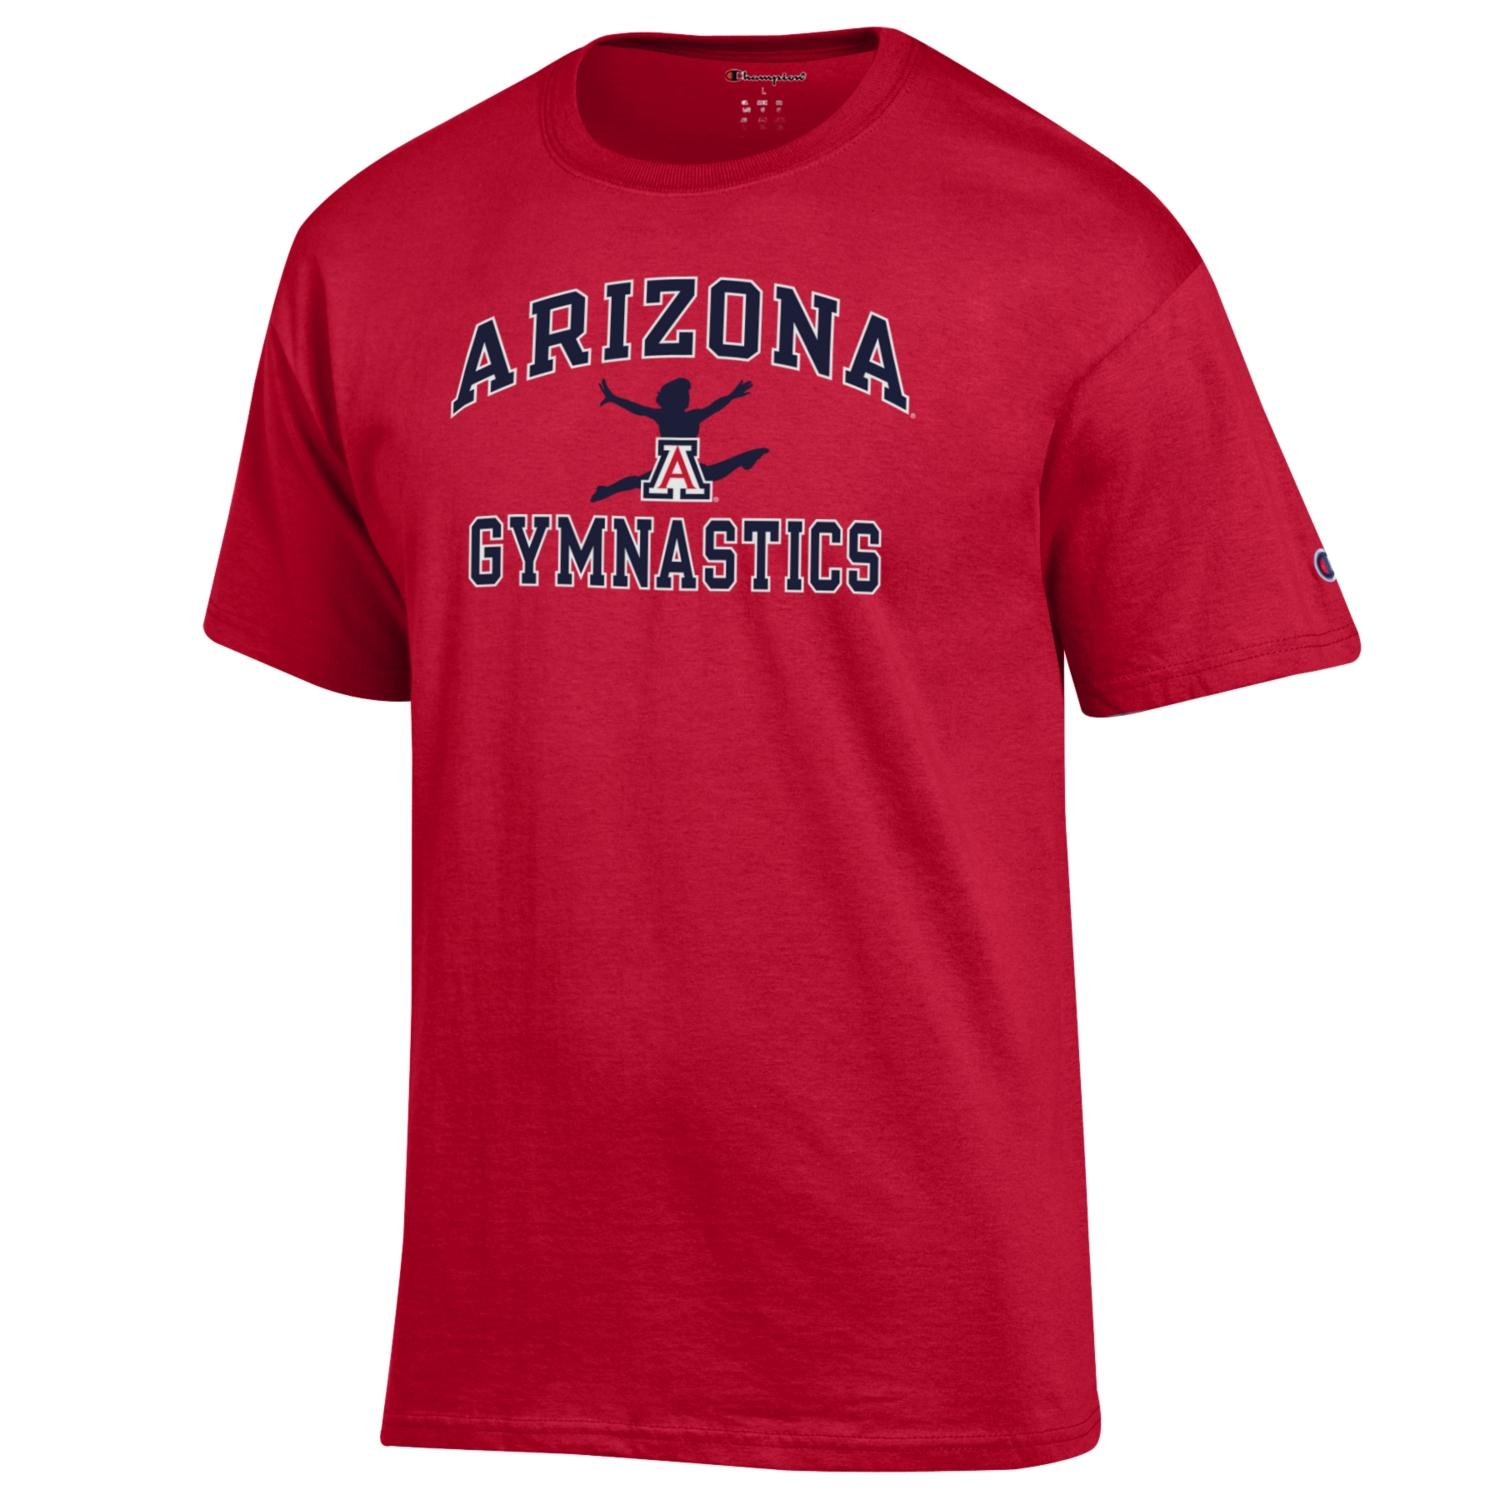 Cover Image For Champion: Arizona Sport Gymnastics Tee - Red